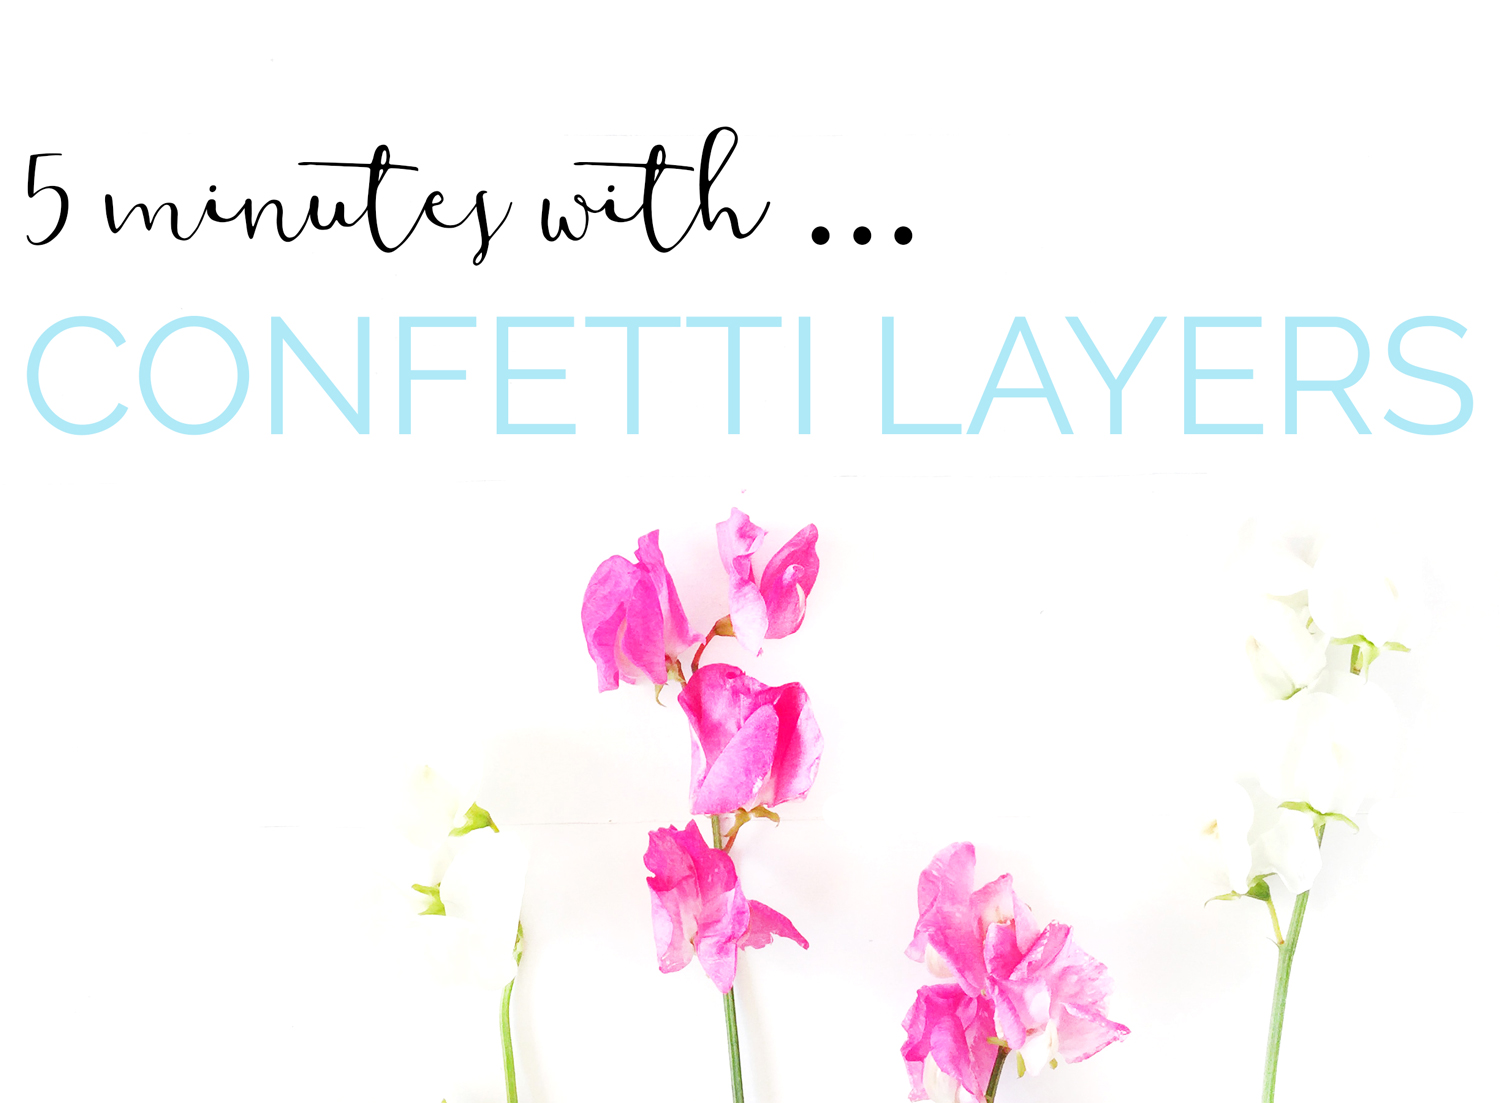 5 Minutes with Confetti Layers